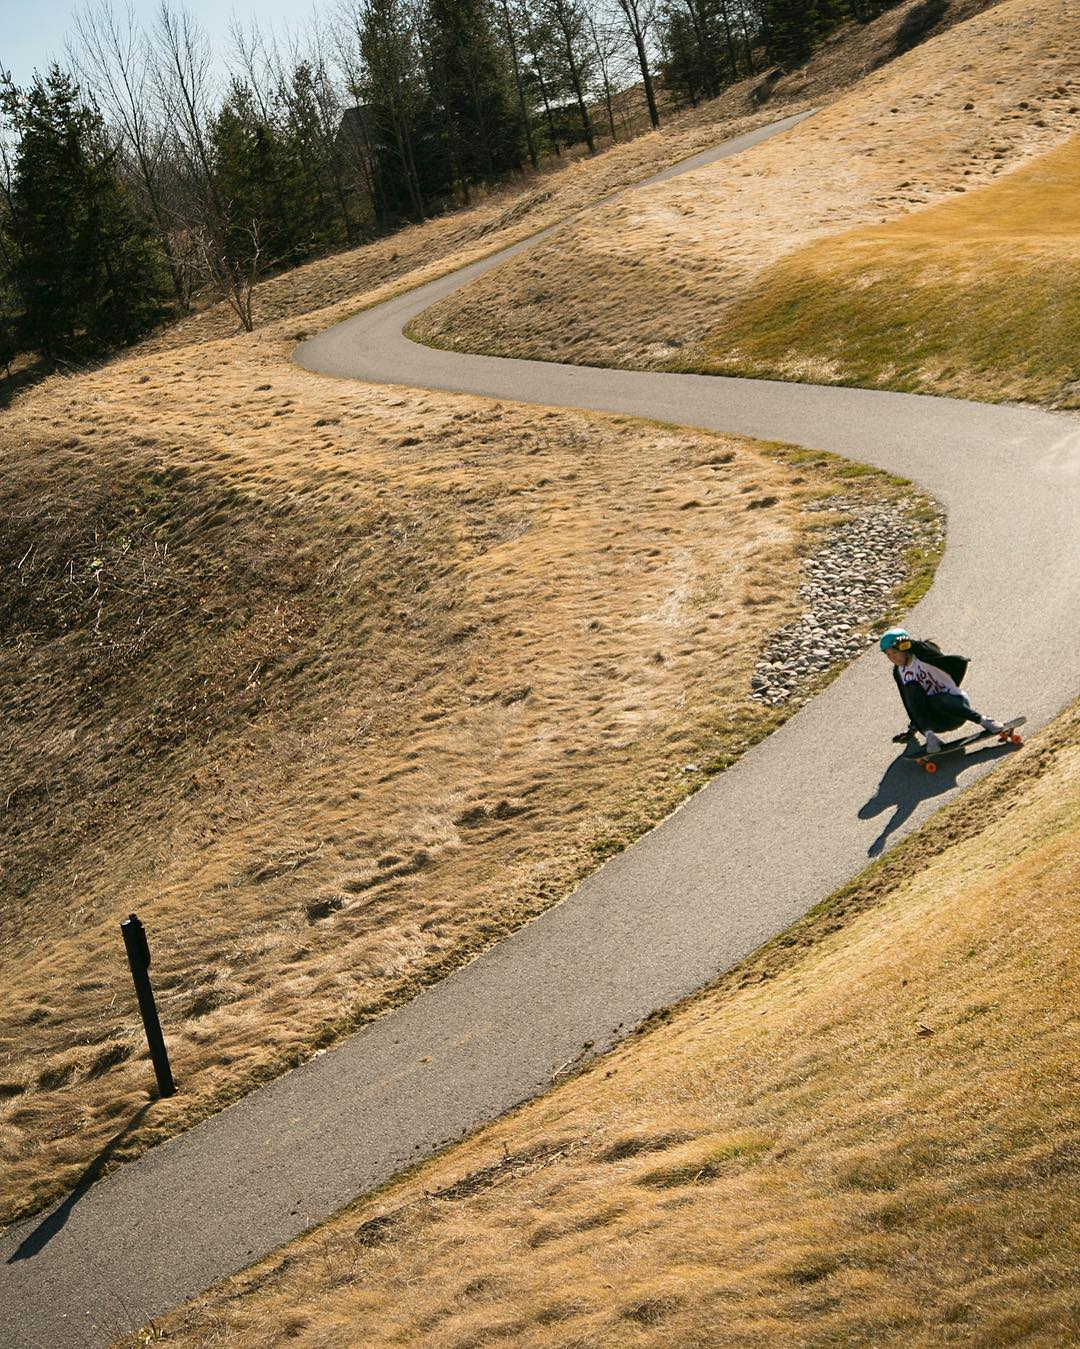 Left, right, left! We all love making turns. @iamcindyzhou definitely does, hands down.